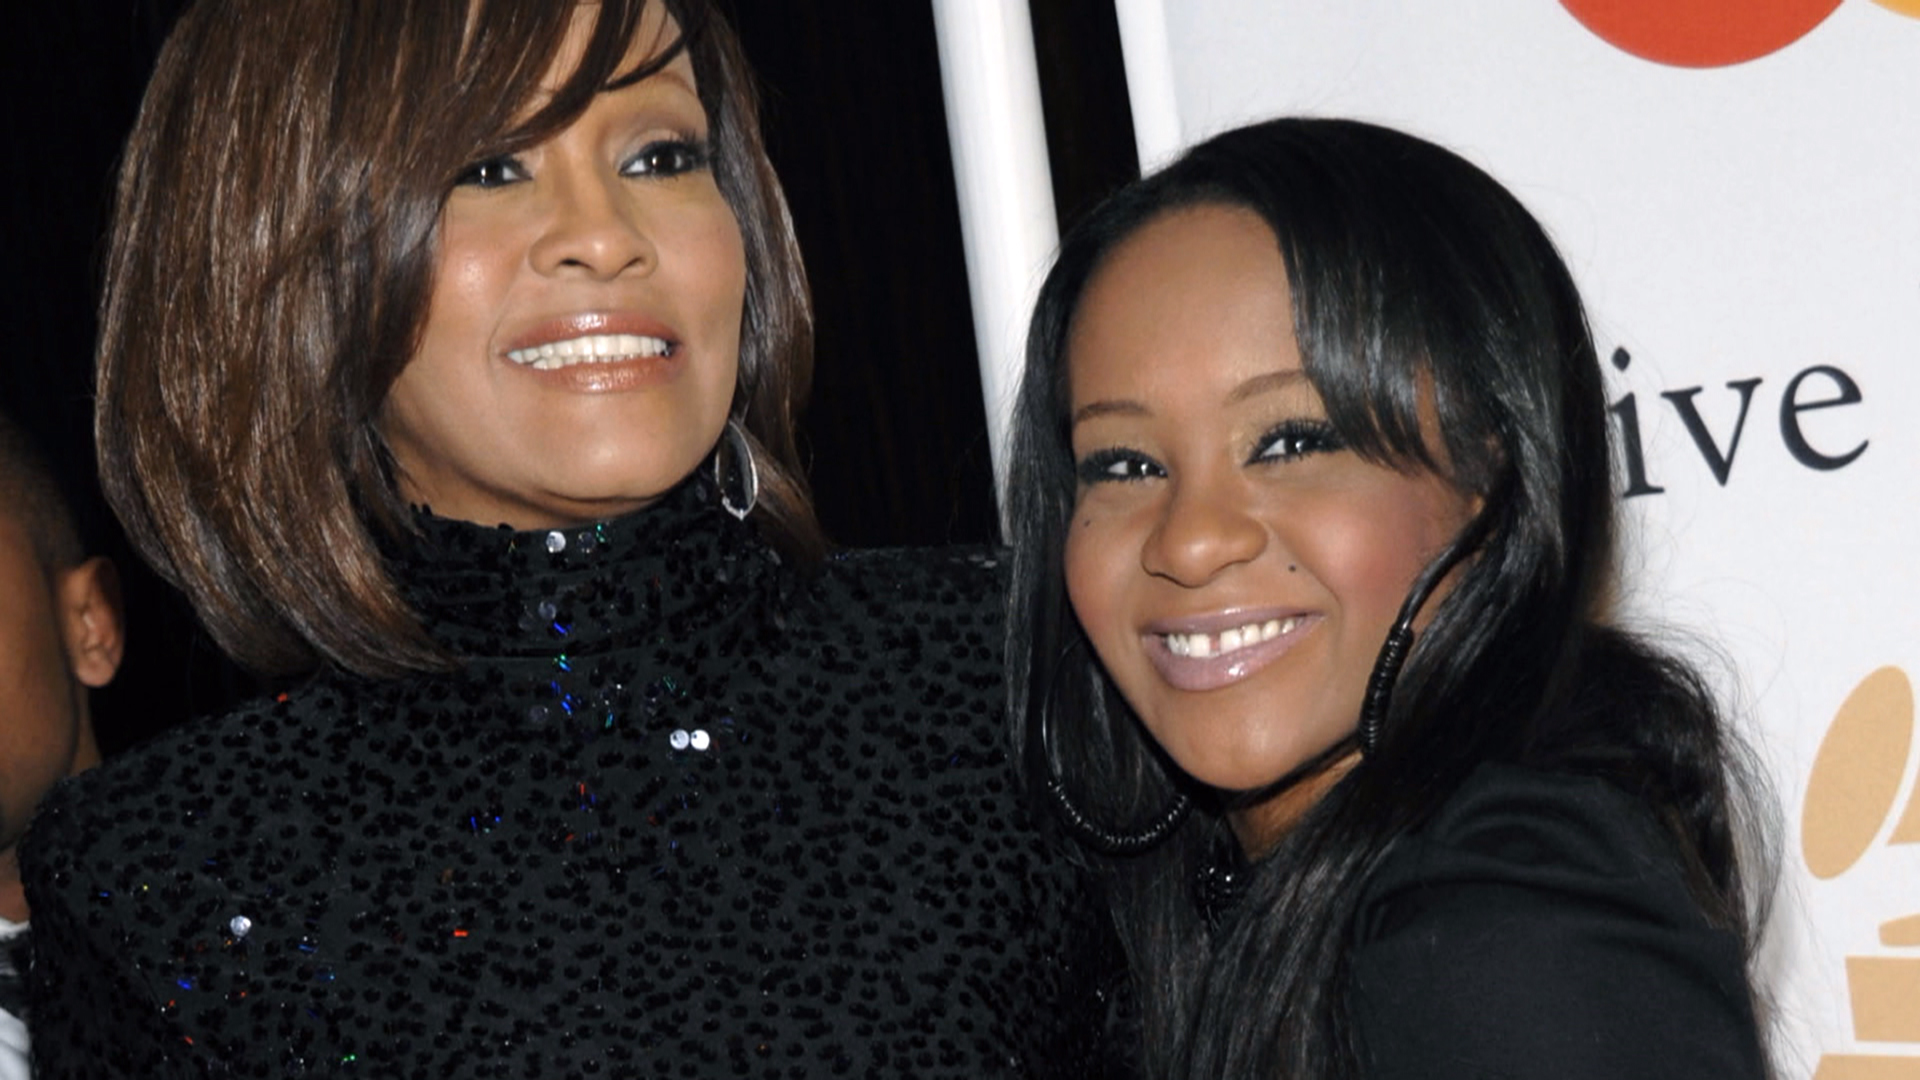 Whitney Houston's daughter found unresponsive, face down in bathtub